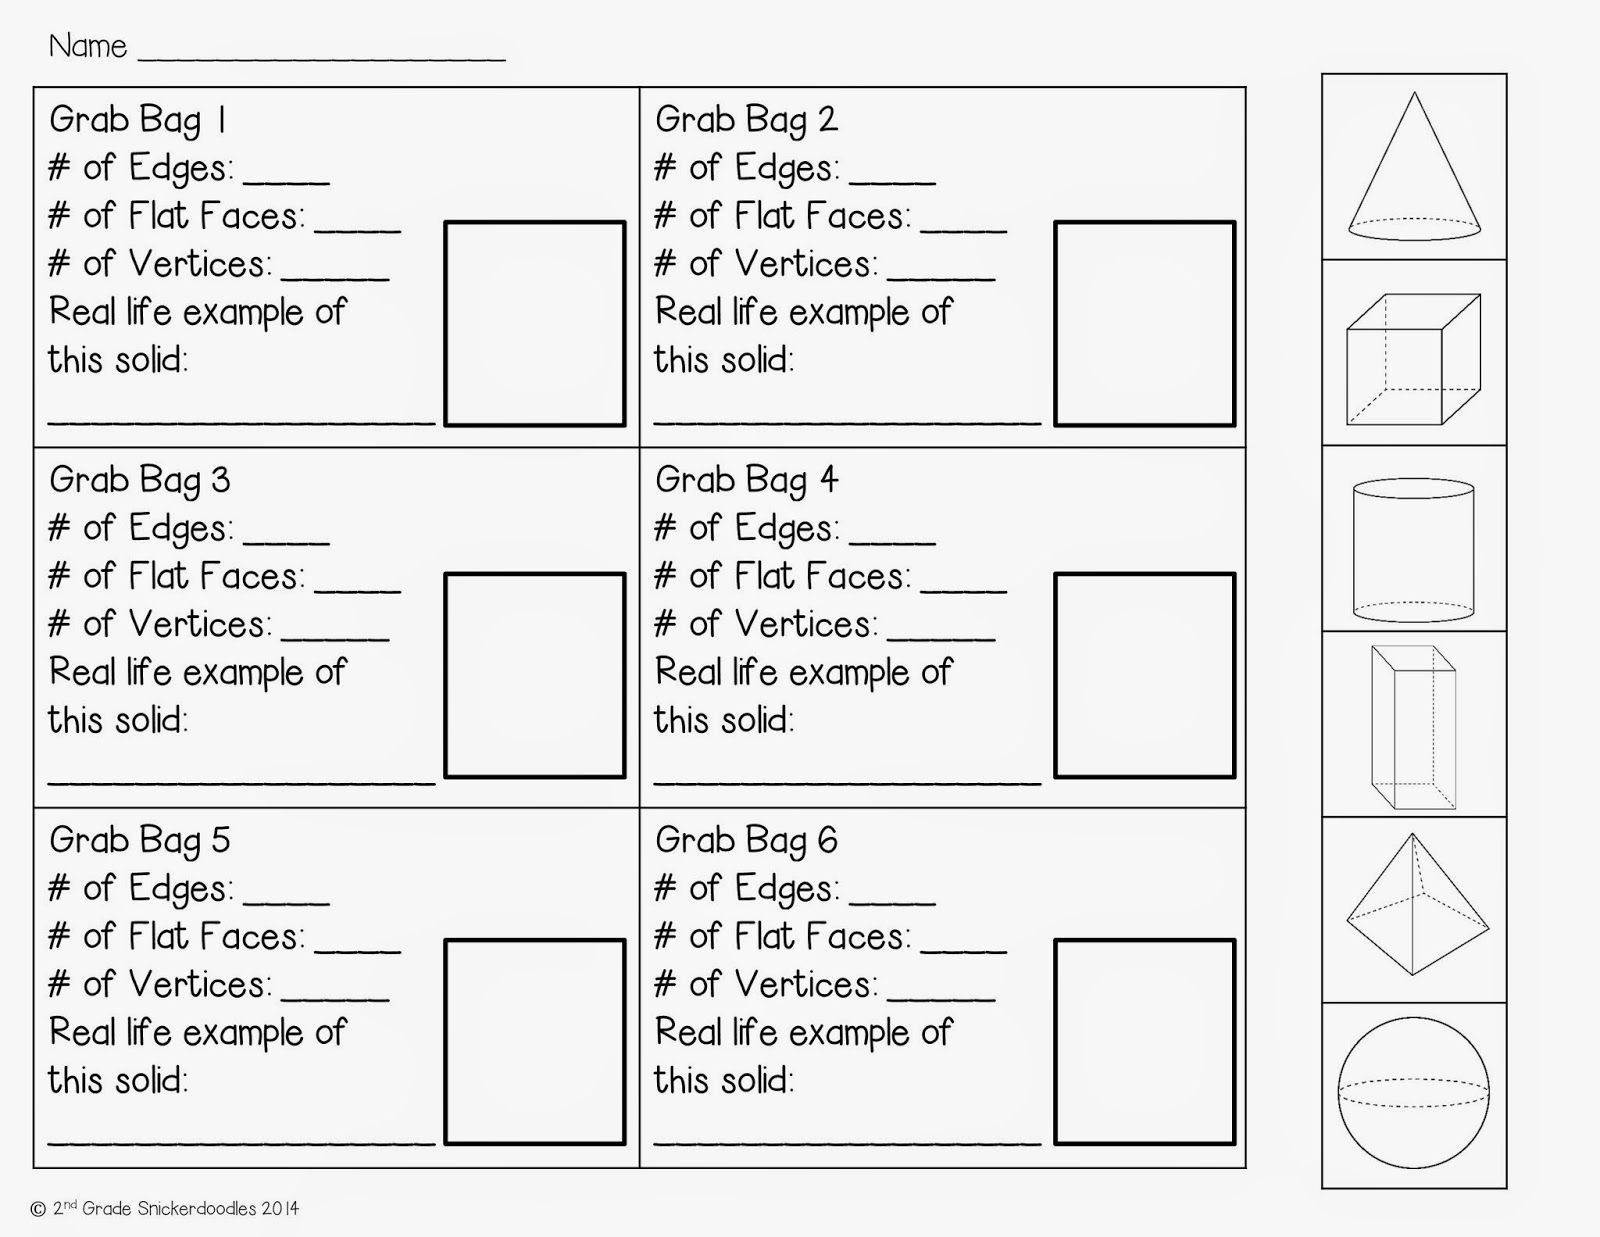 2nd Grade Geometry Worksheets Geometric solids Grab Bag Activity